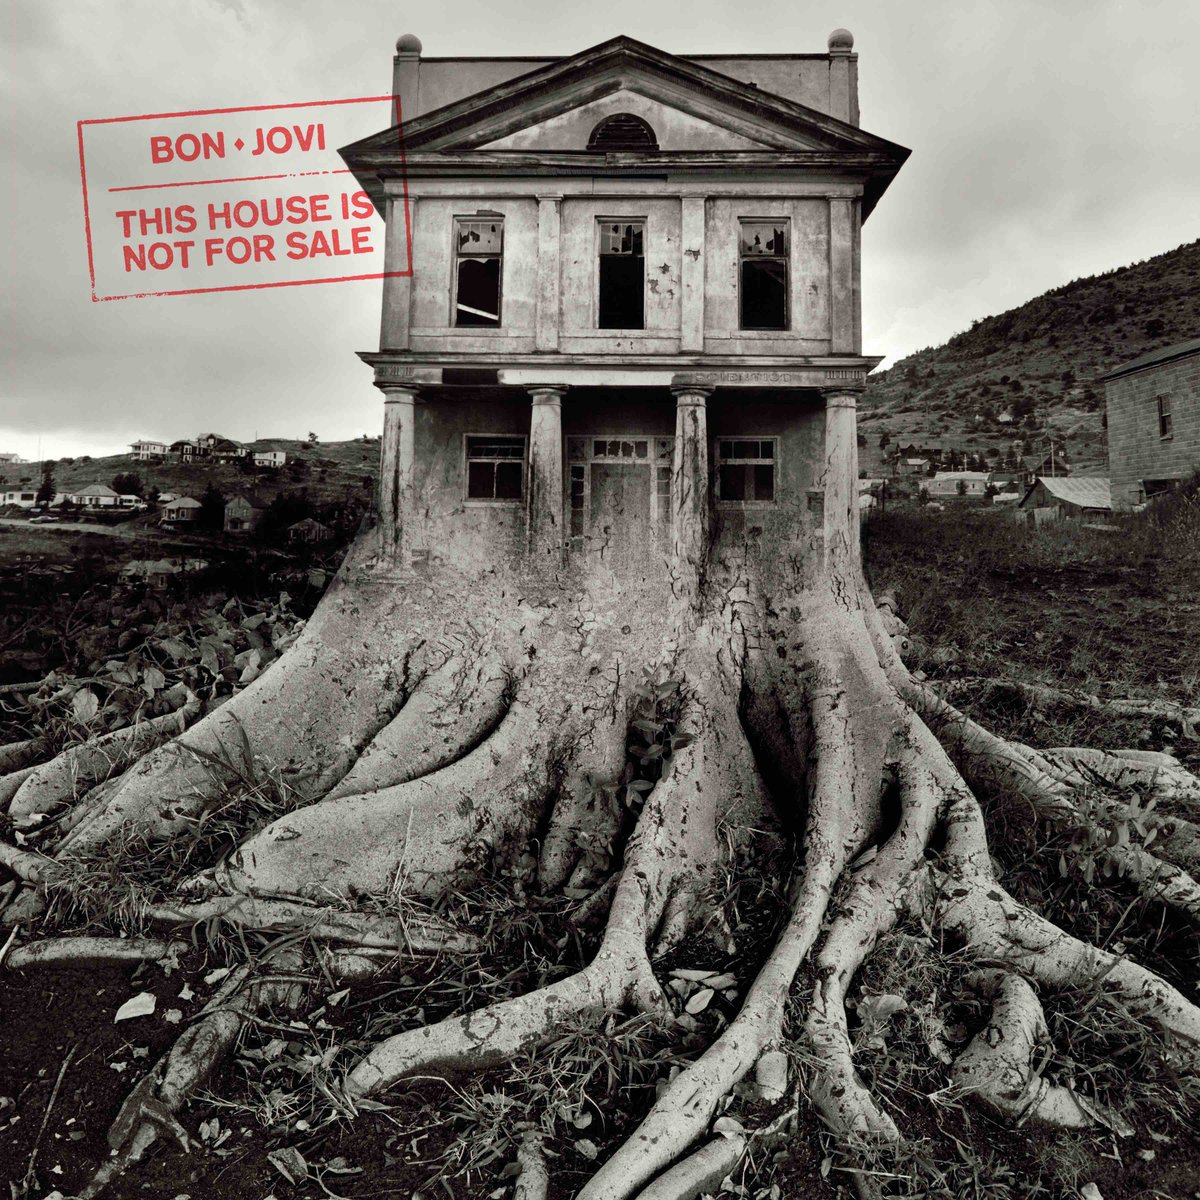 artwork_for_bon_jovis_album_this_house_is_not_for_sale